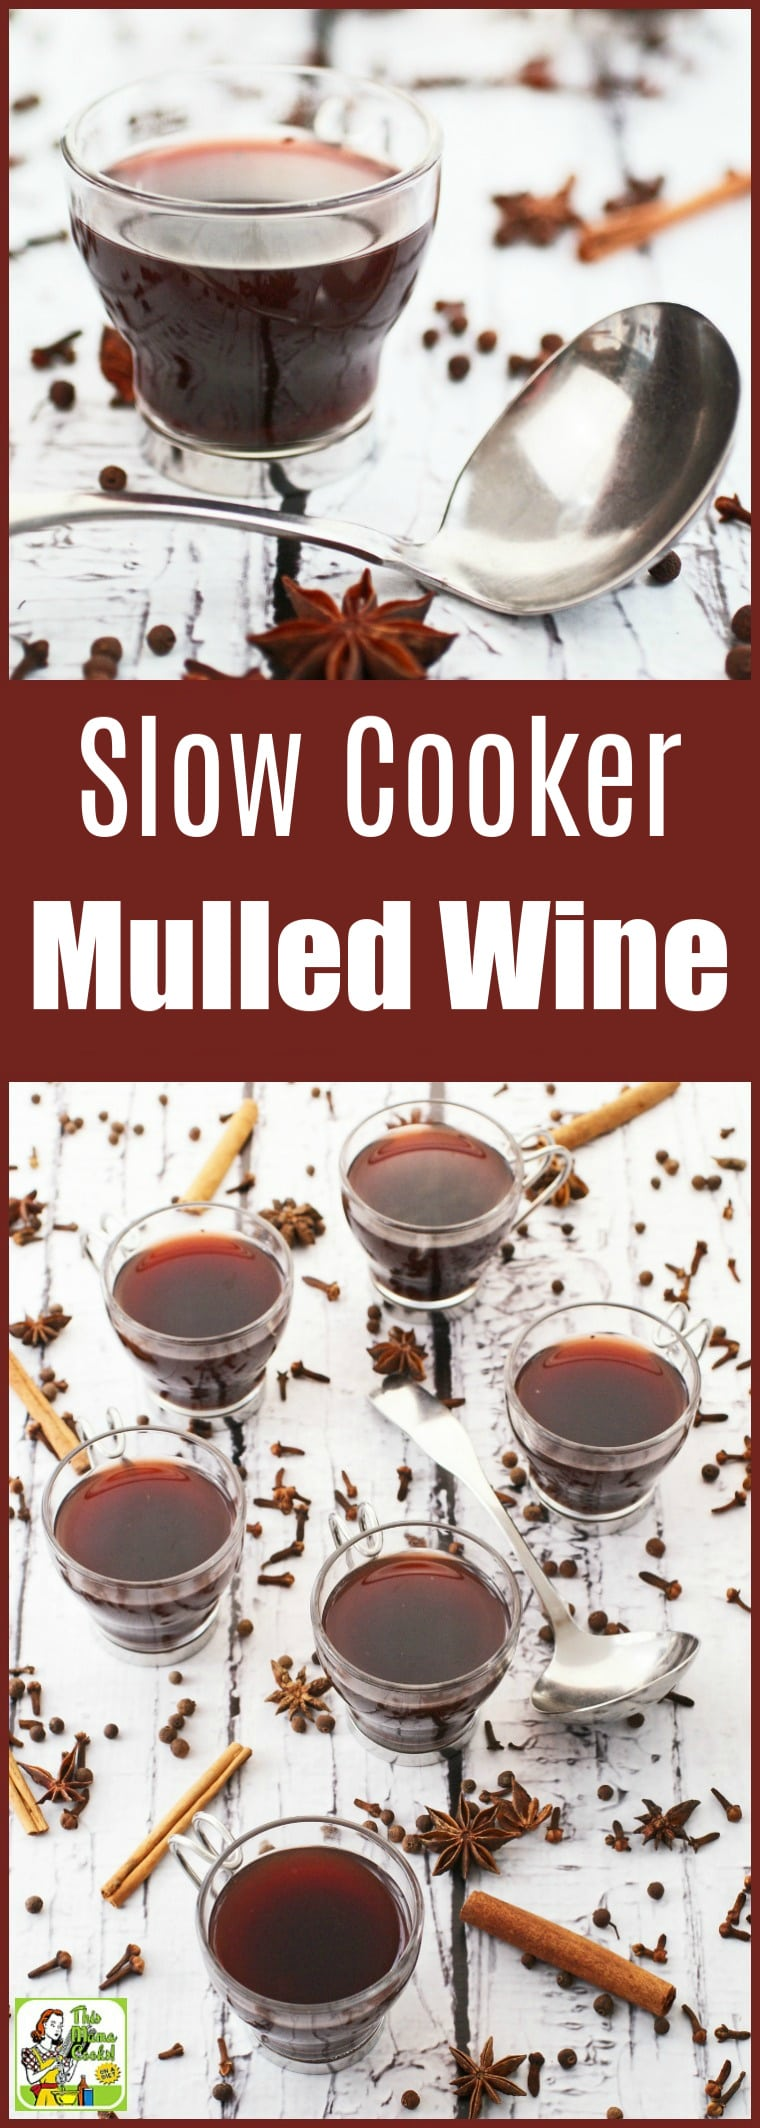 Slow Cooker Mulled Wine Recipe